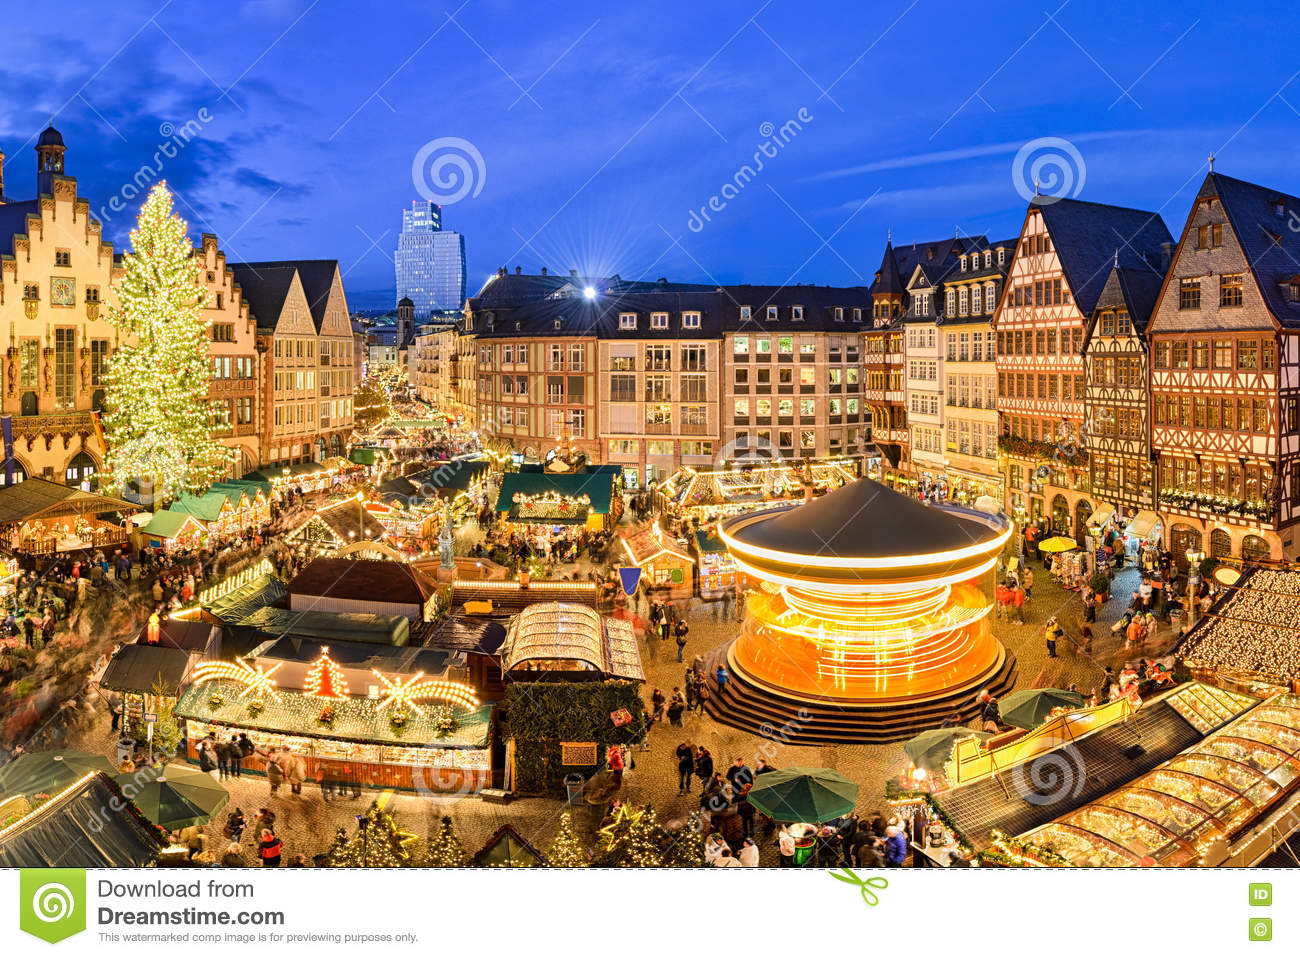 christmas market in frankfurt germany stock photo image of romer winter 74306468. Black Bedroom Furniture Sets. Home Design Ideas